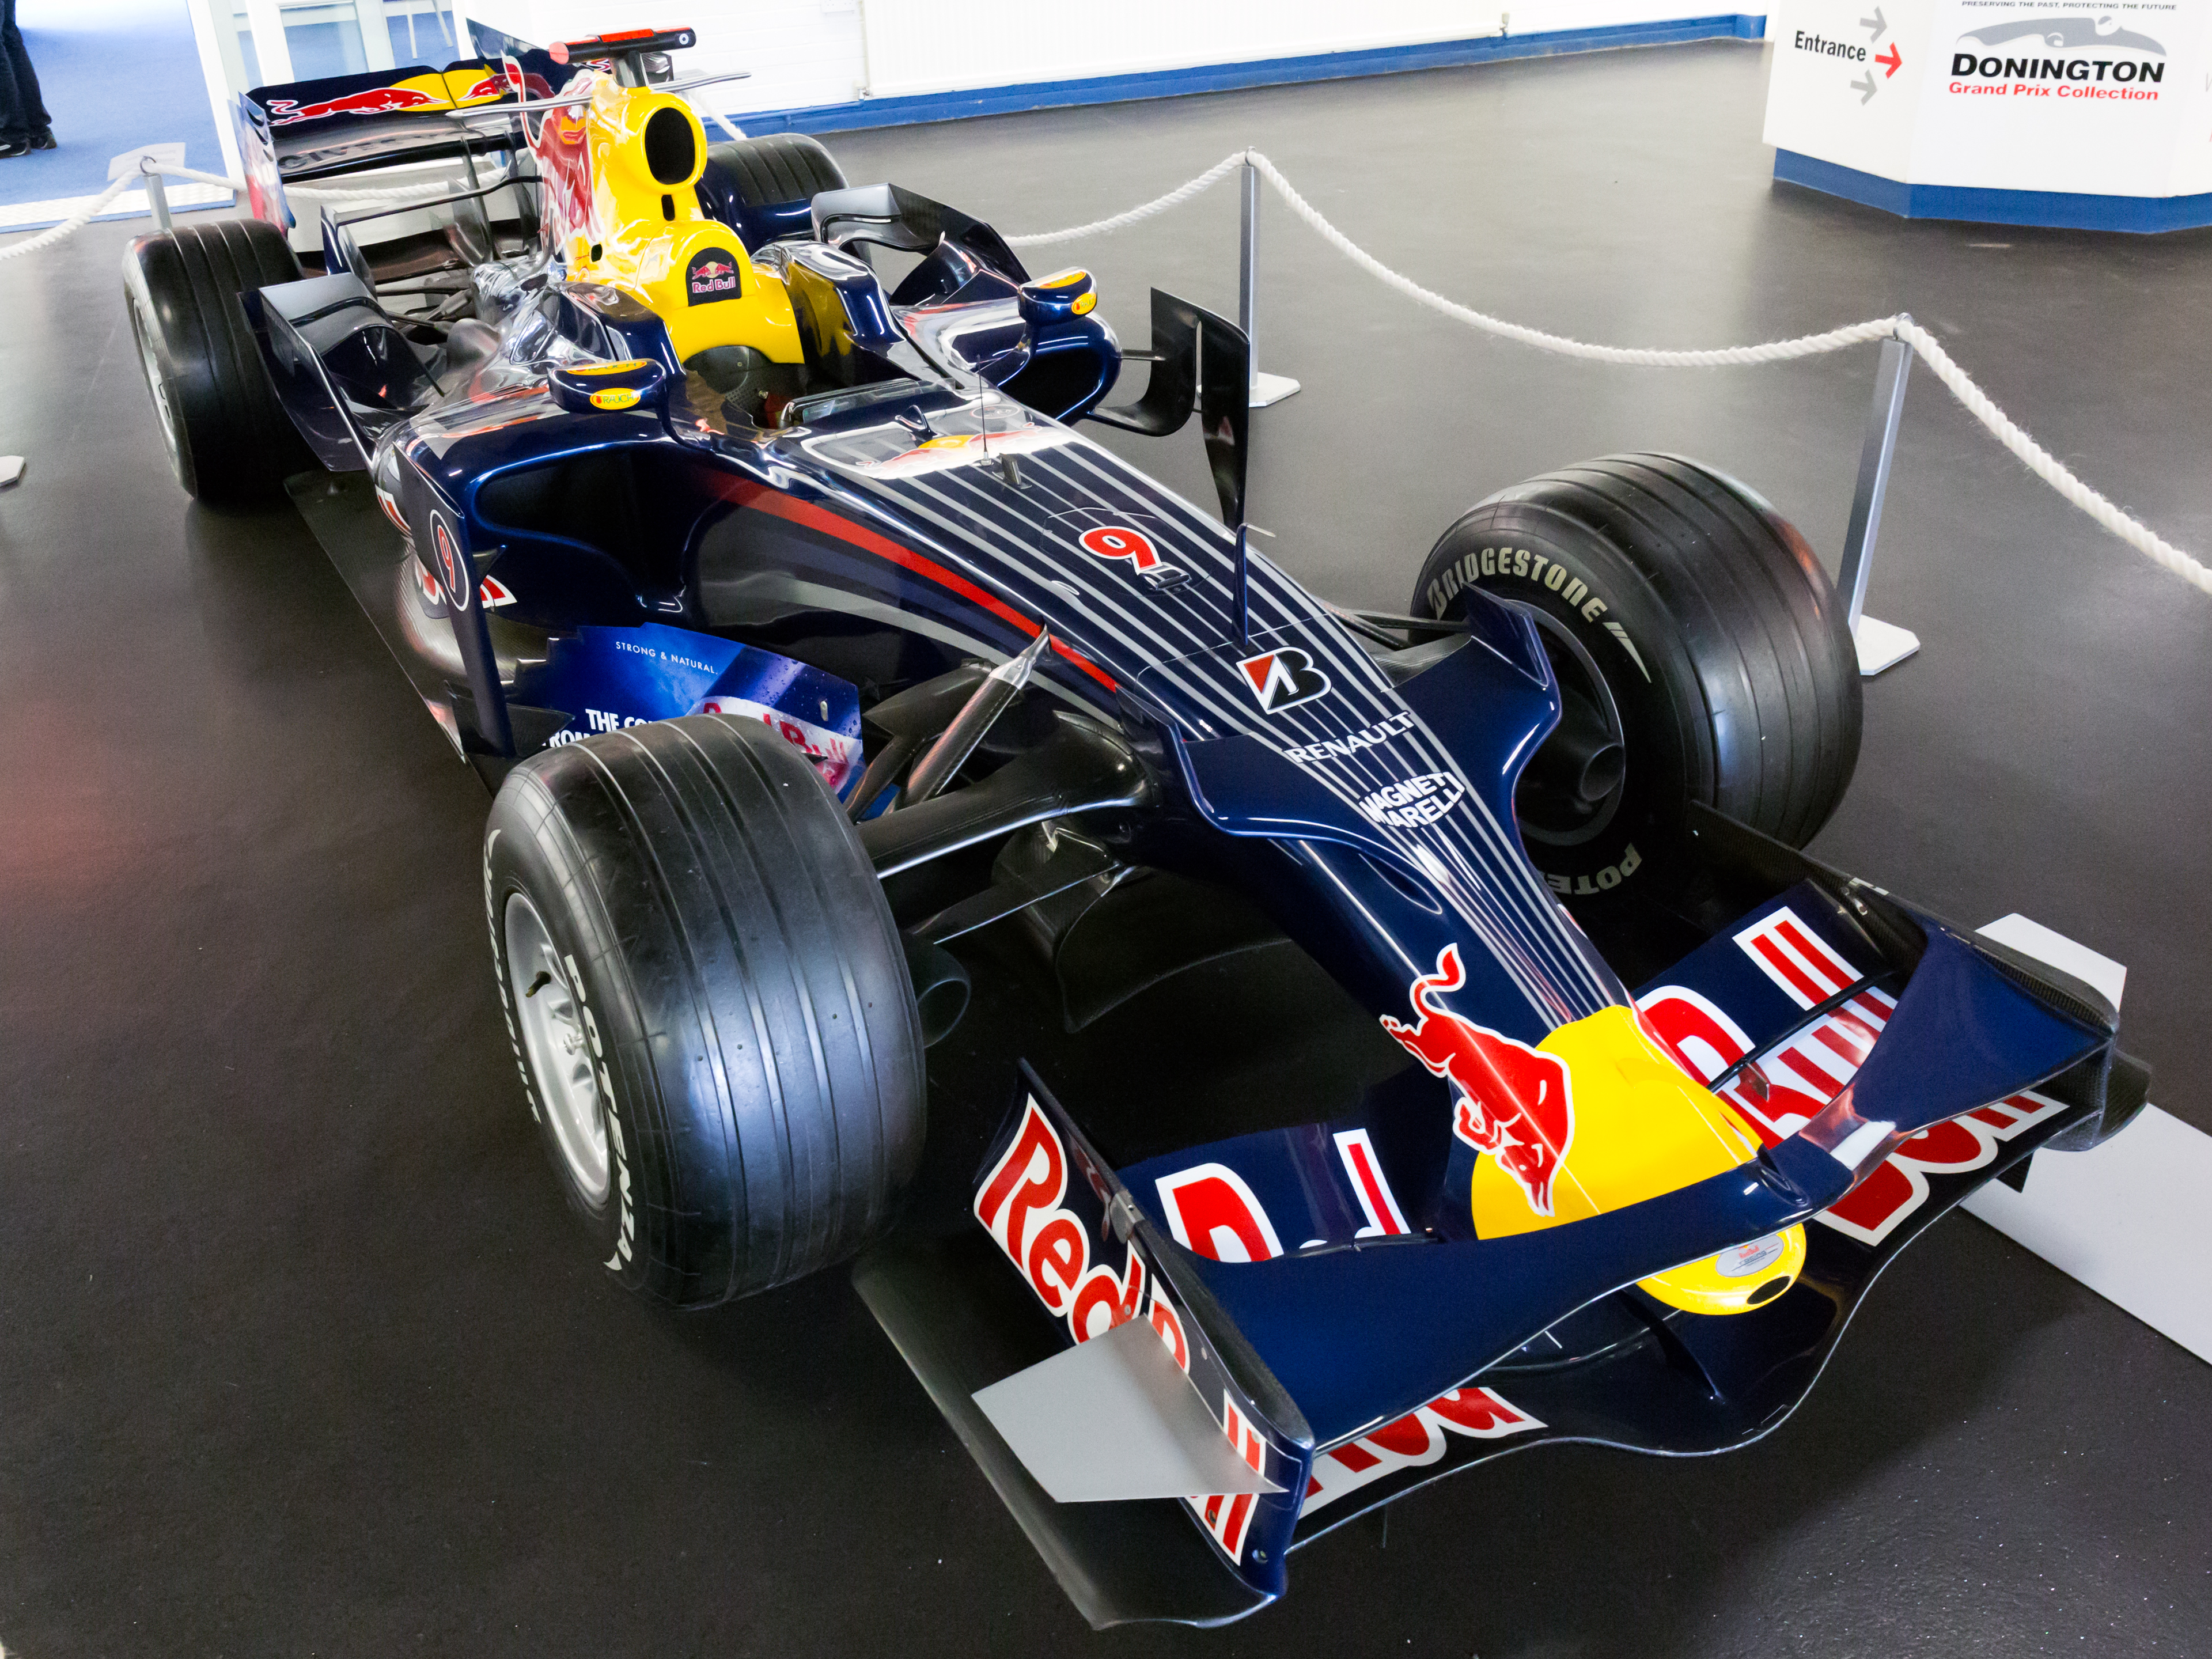 Red bull rb4 photo - 6